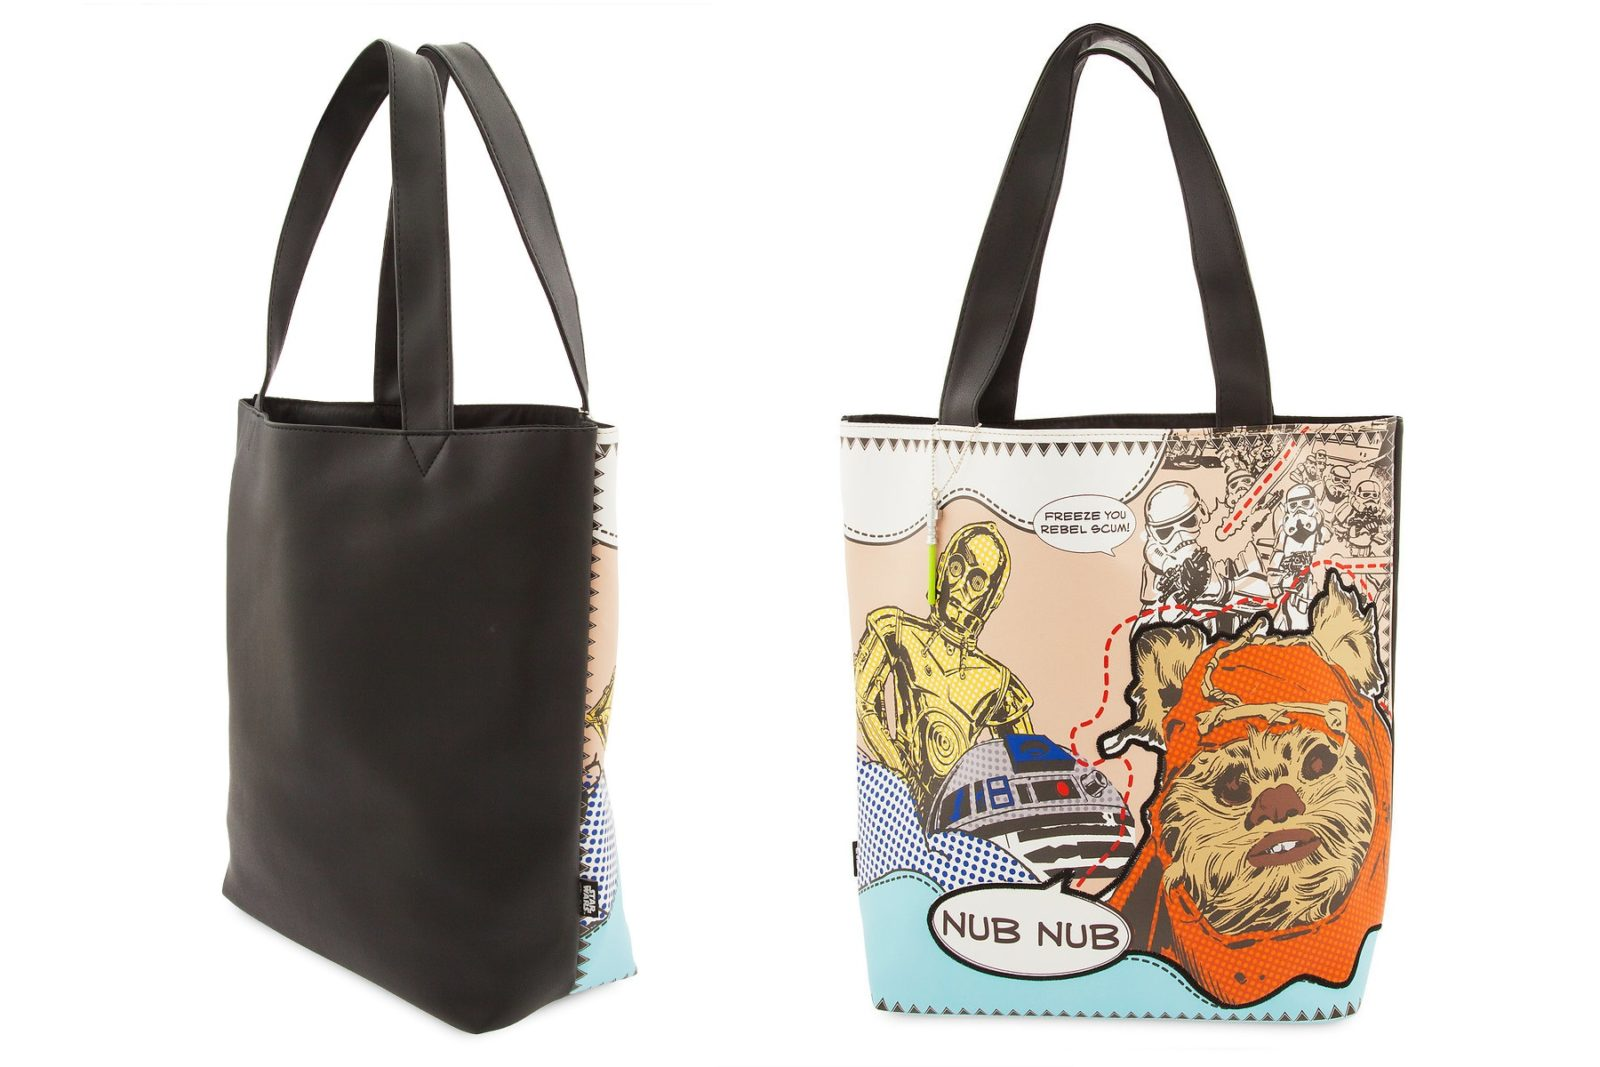 Star Wars ROTJ 35th Anniversary Tote Bag